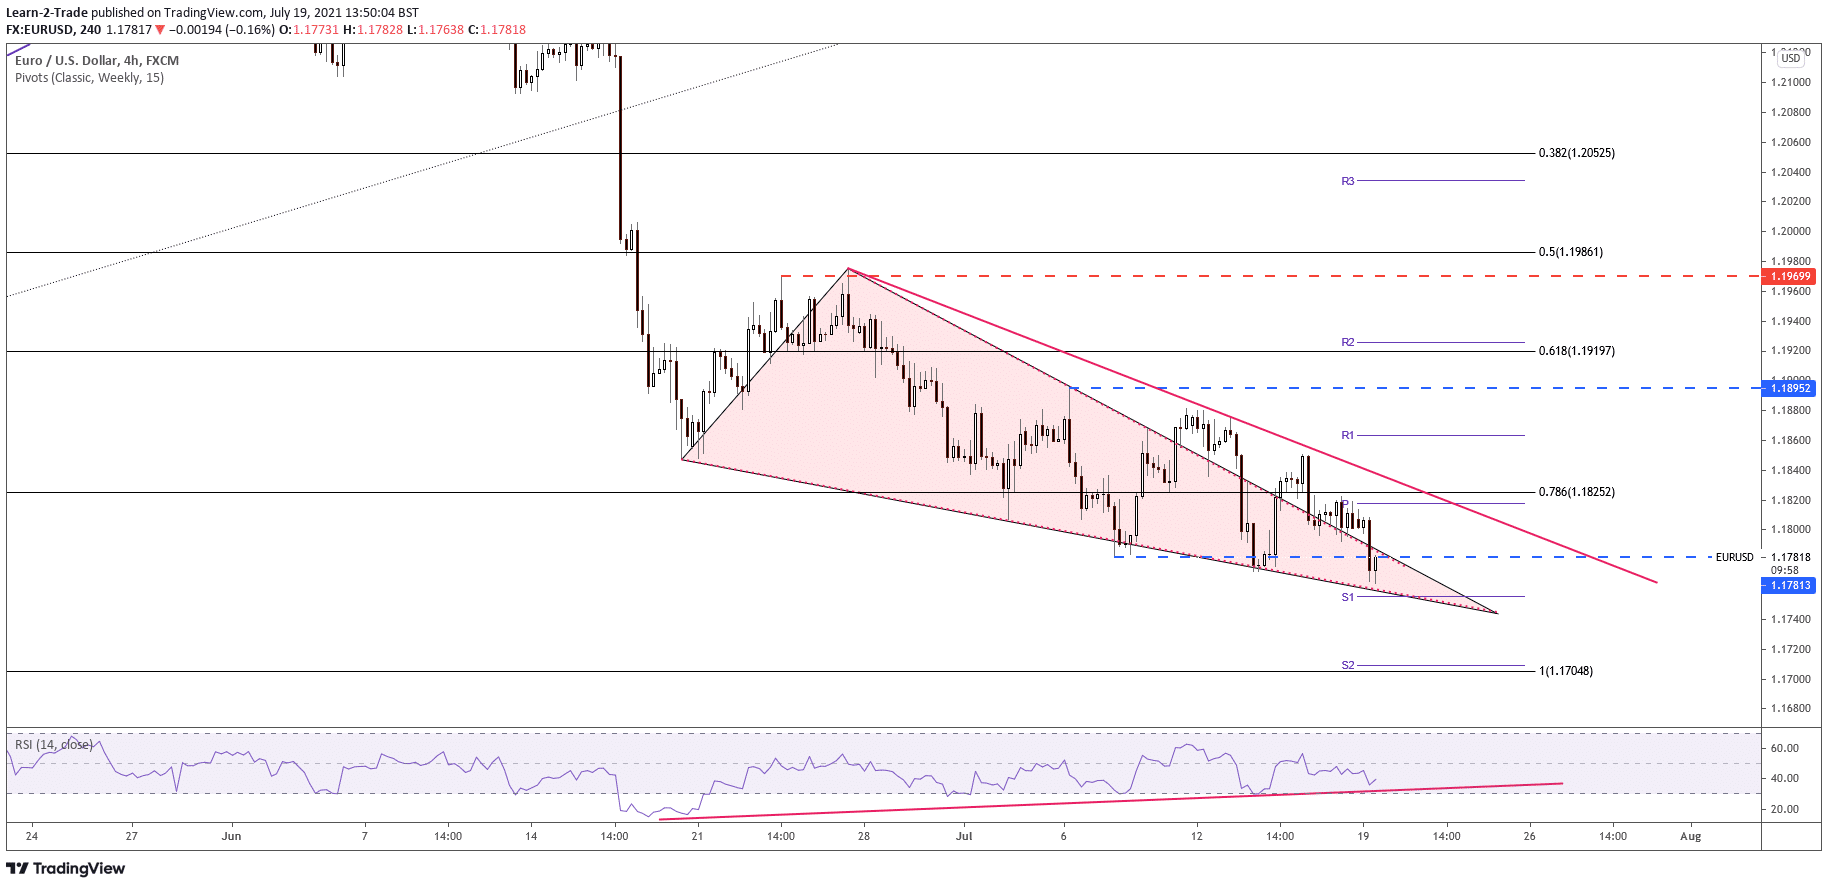 USD/JPY analysis on 4-hour chart